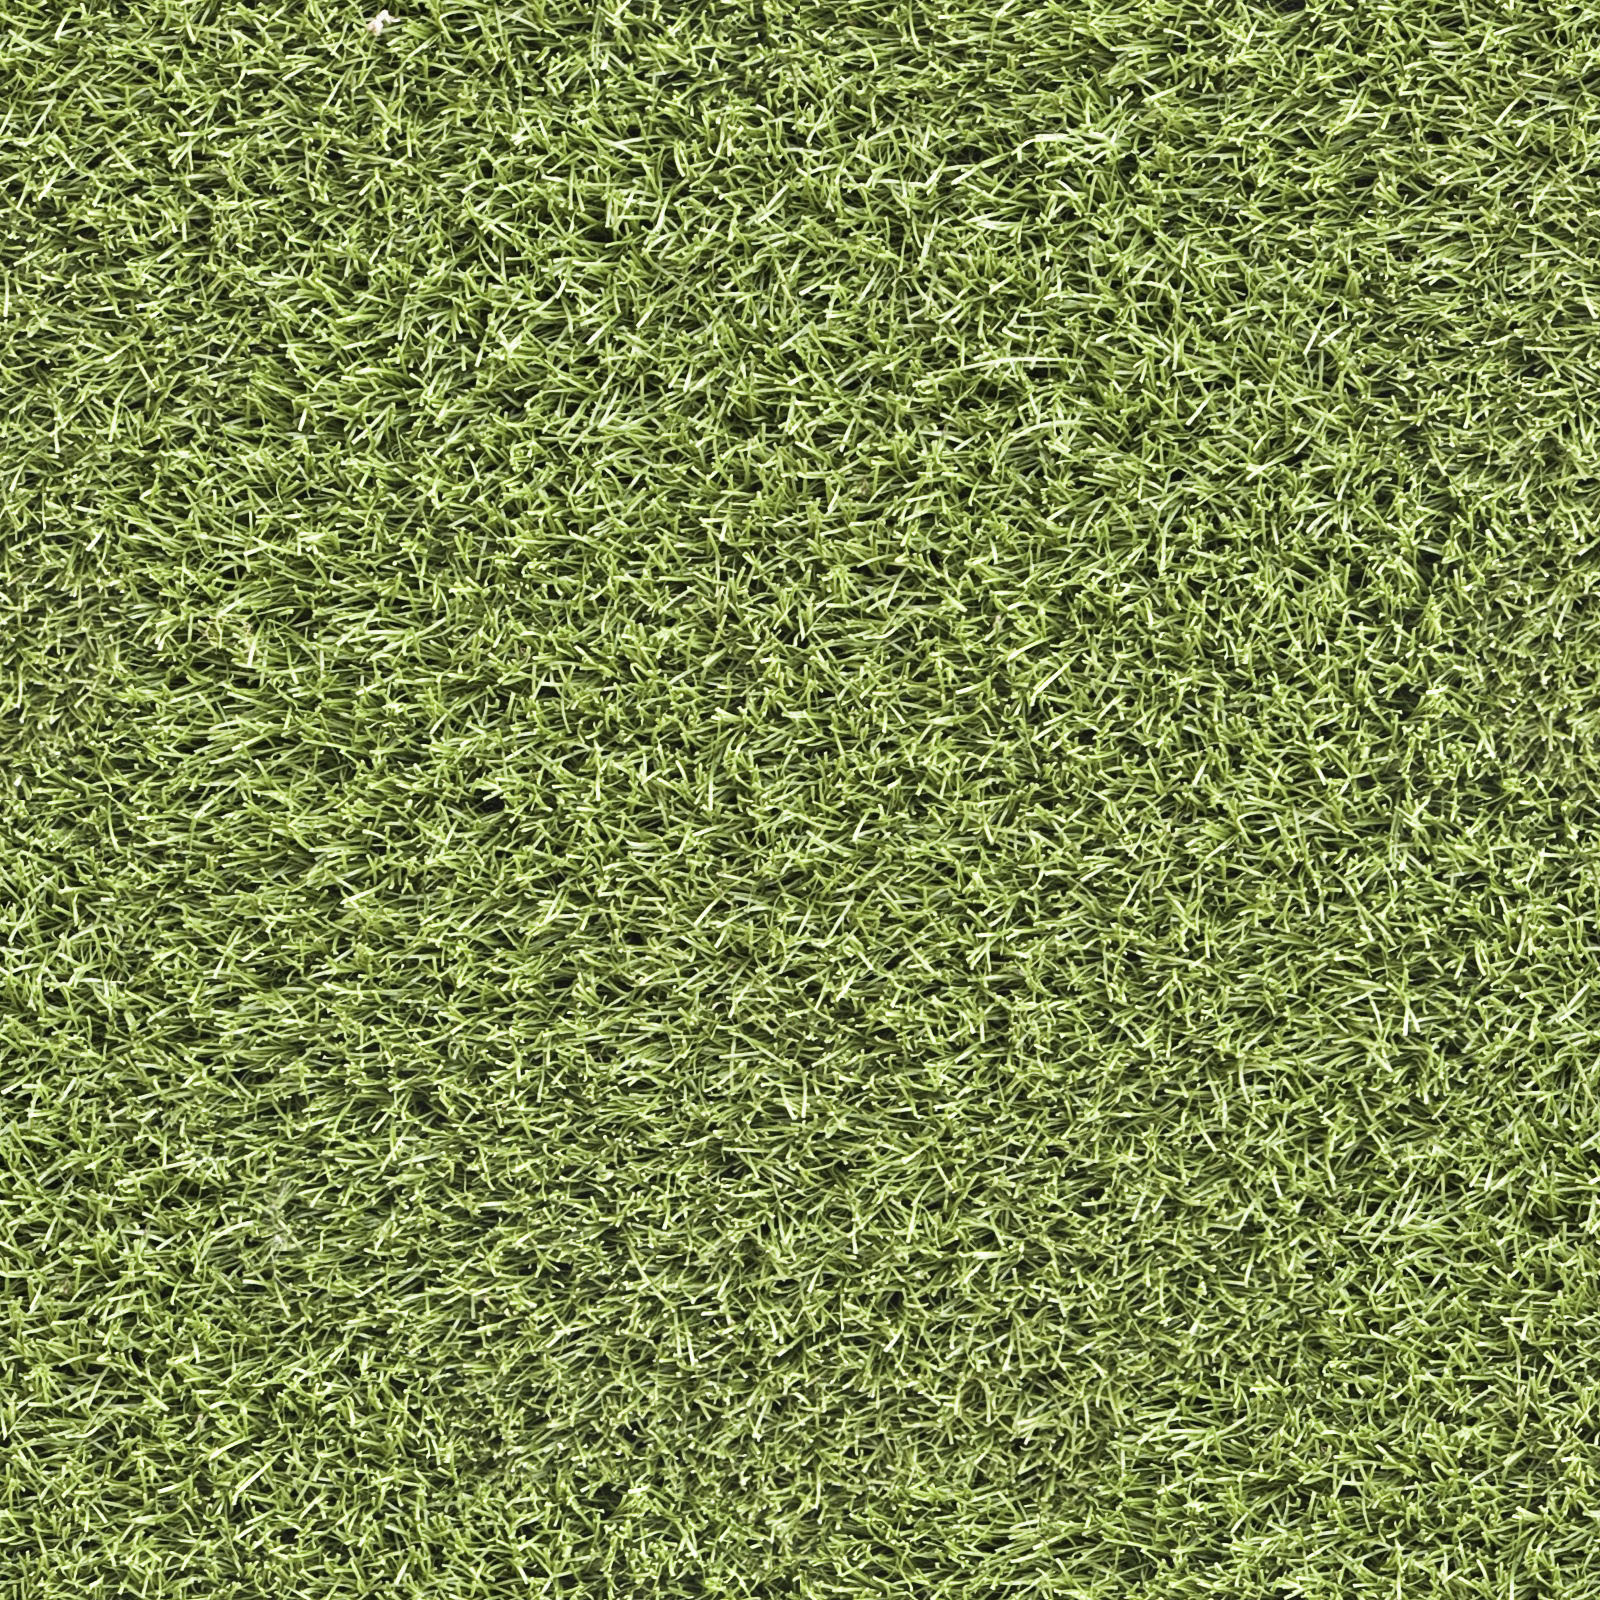 Green Grass Ground Tiled Maps Texturise Free Seamless